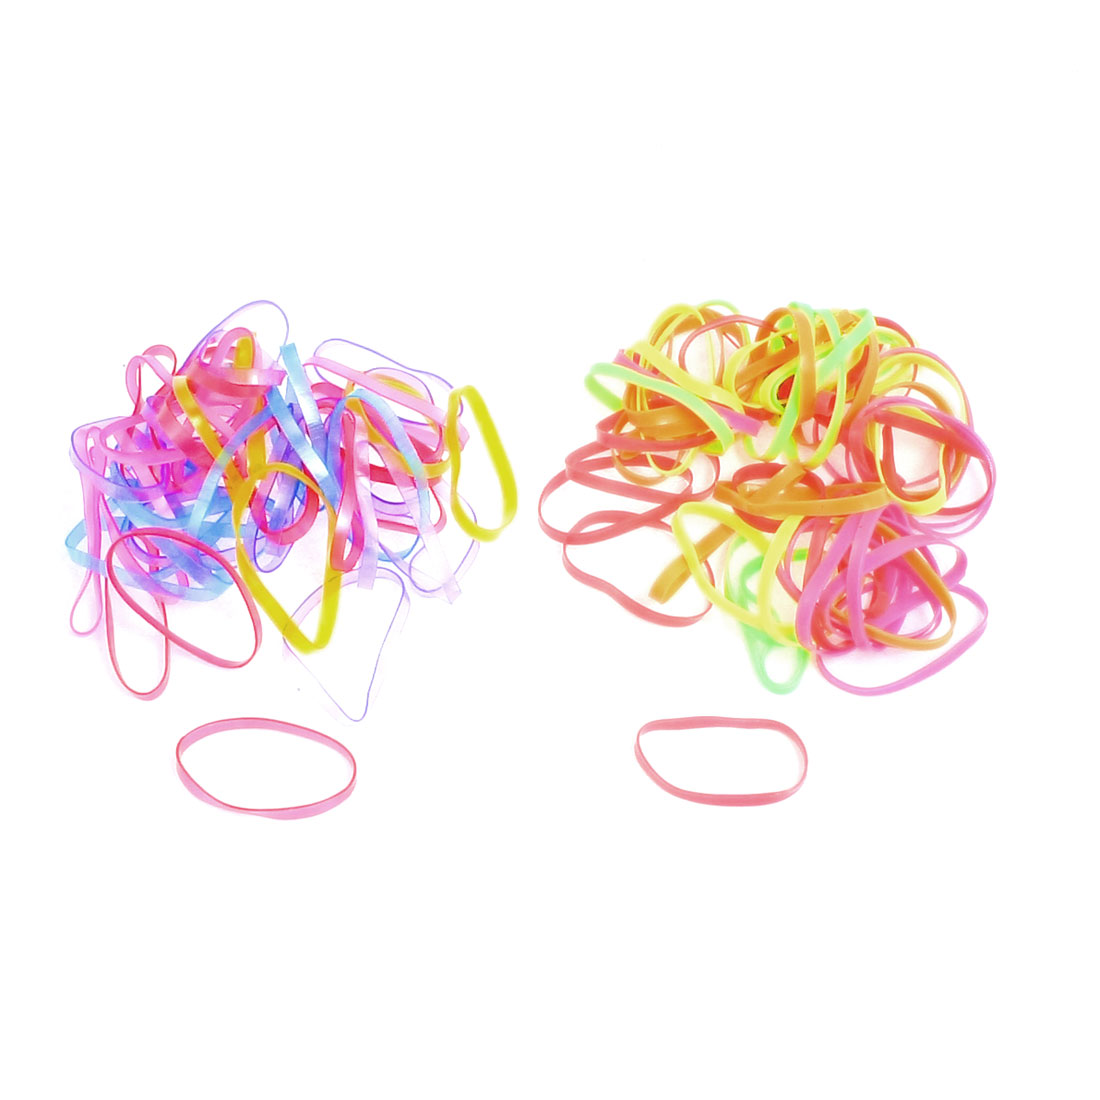 100 Pcs Colorful Oval Design Elastic Ponytail Hair Band for Girls